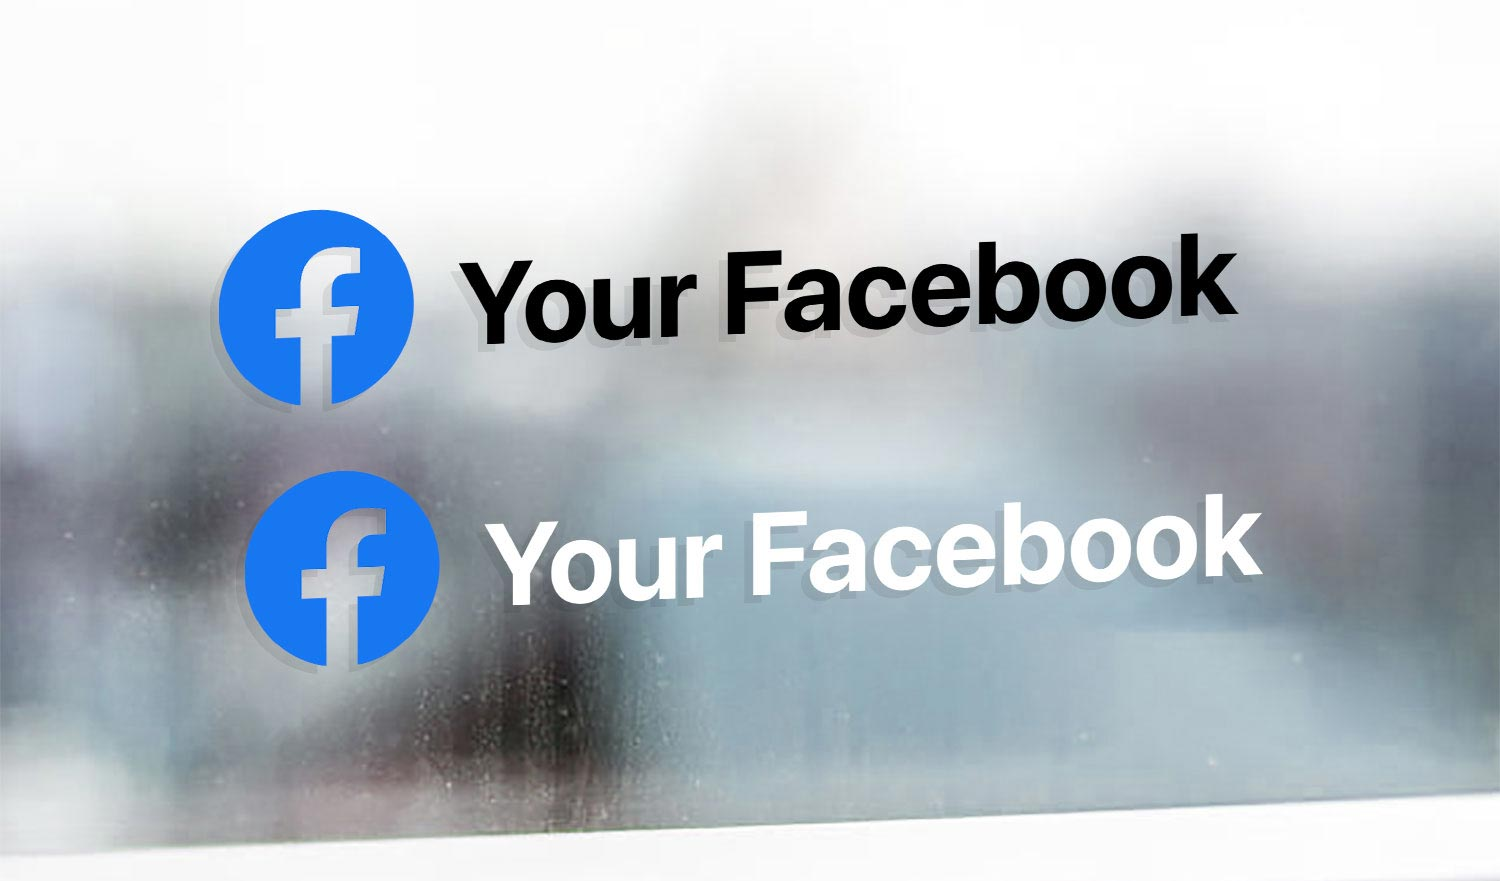 Personal Facebook profile name sticker